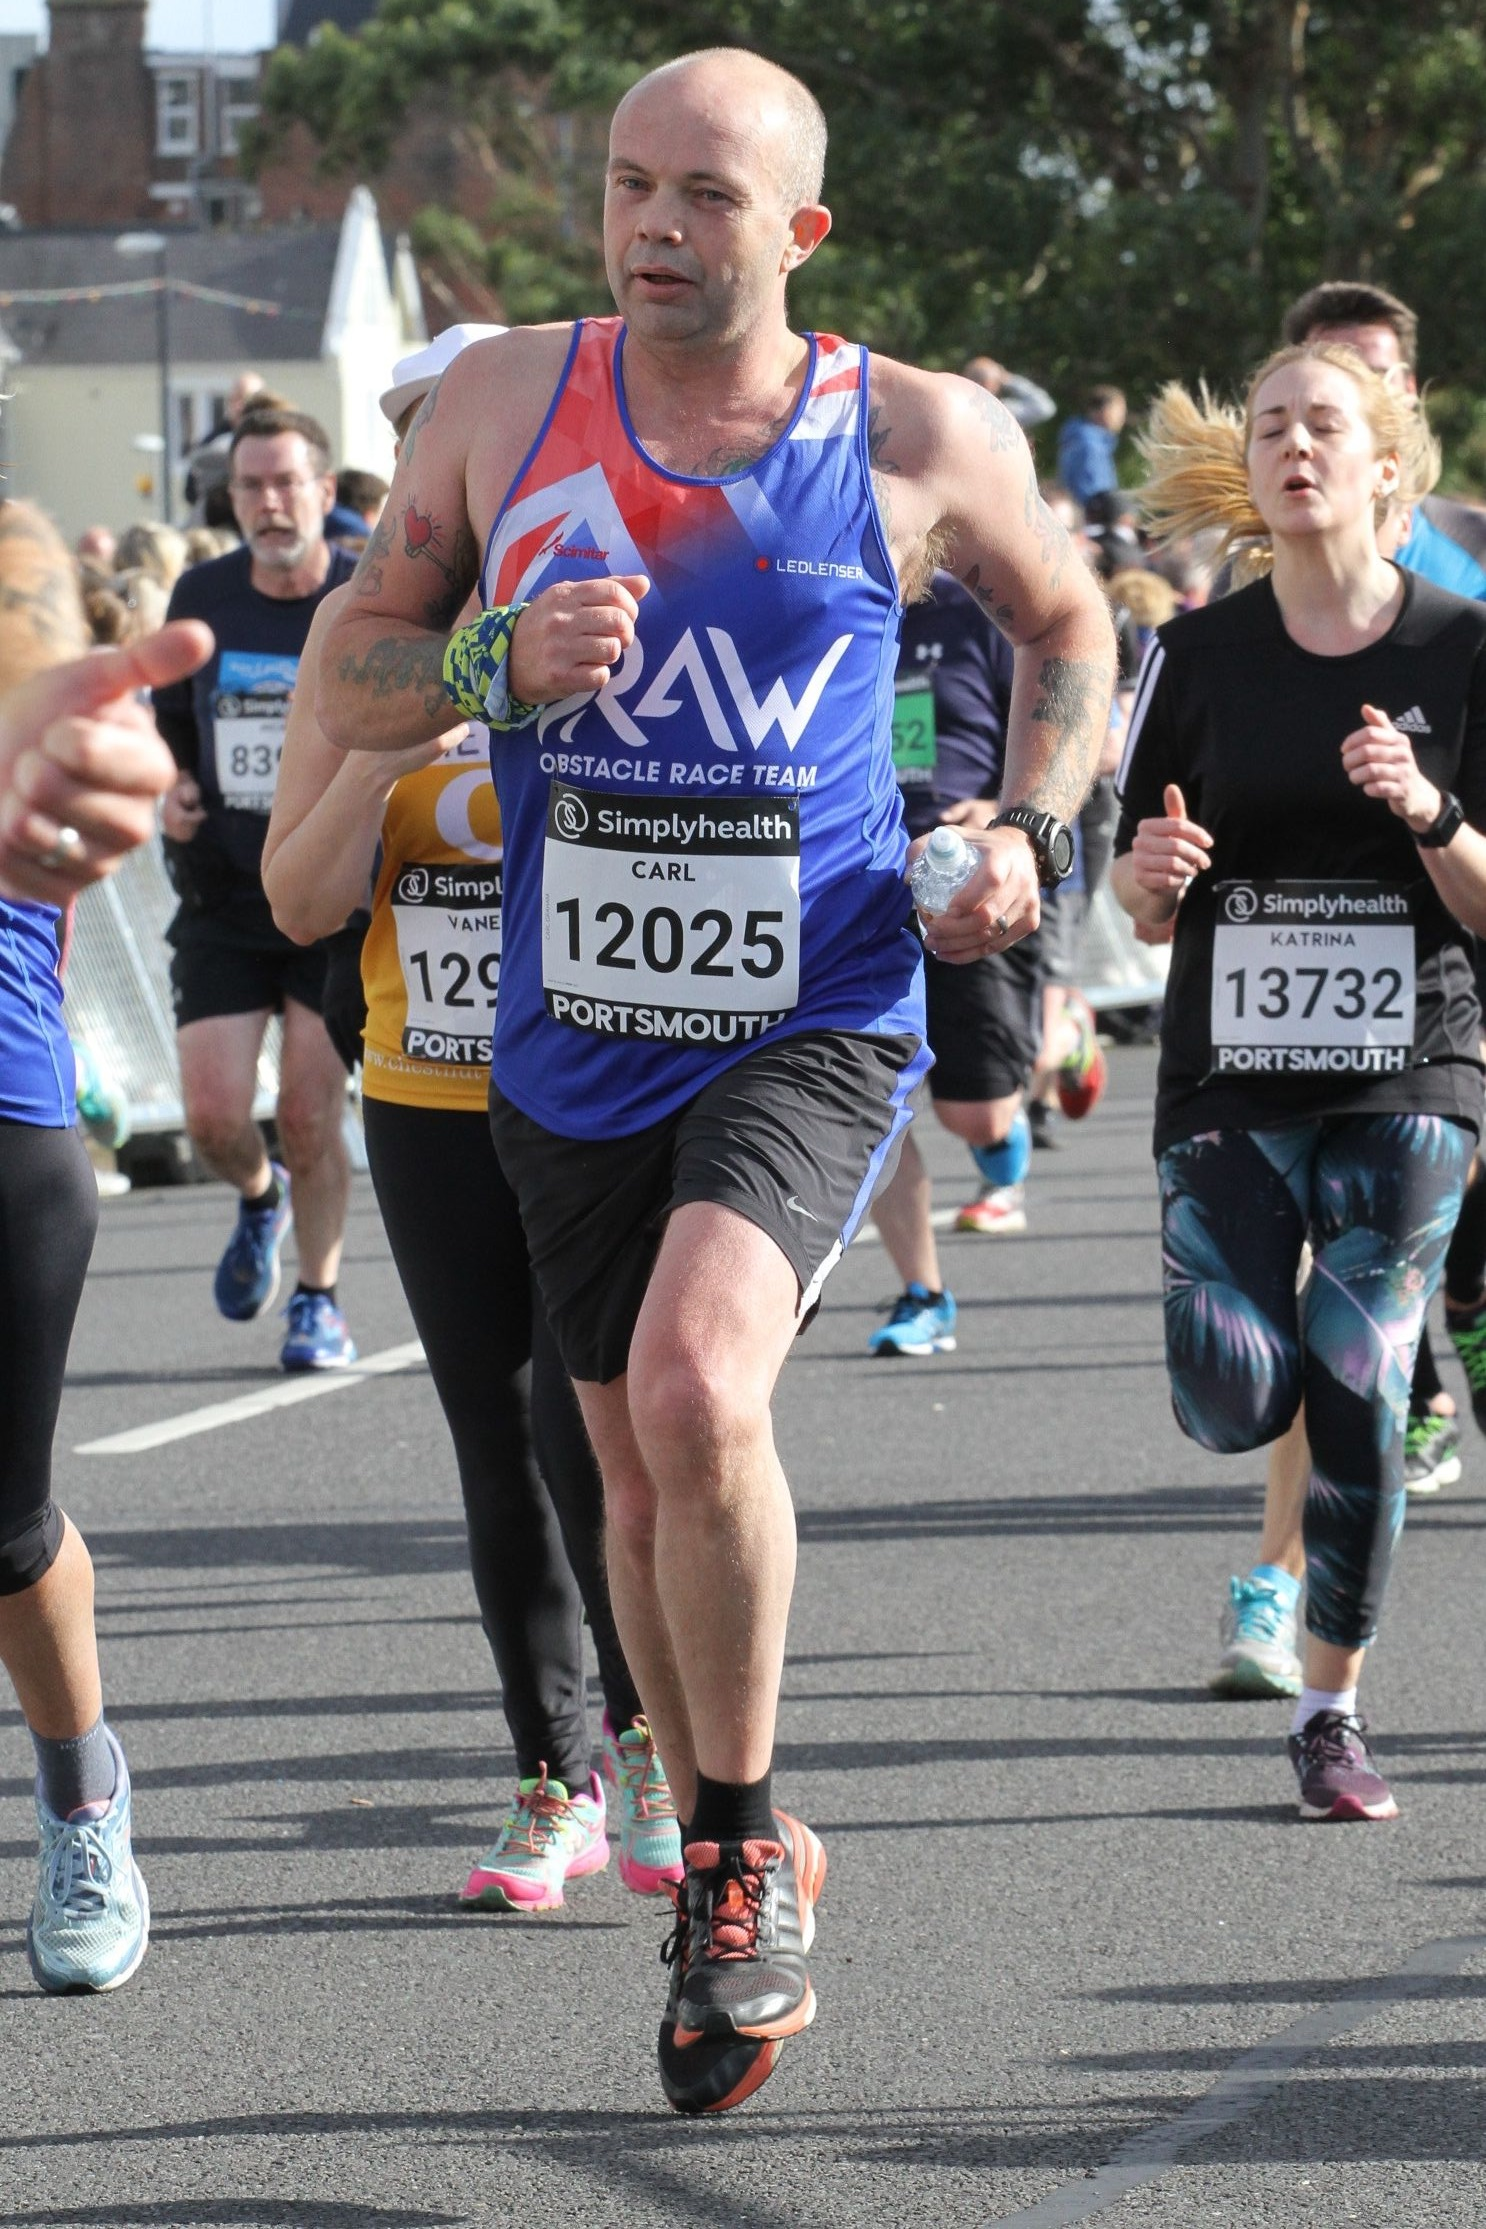 Carl Graham in action in the Great South Run